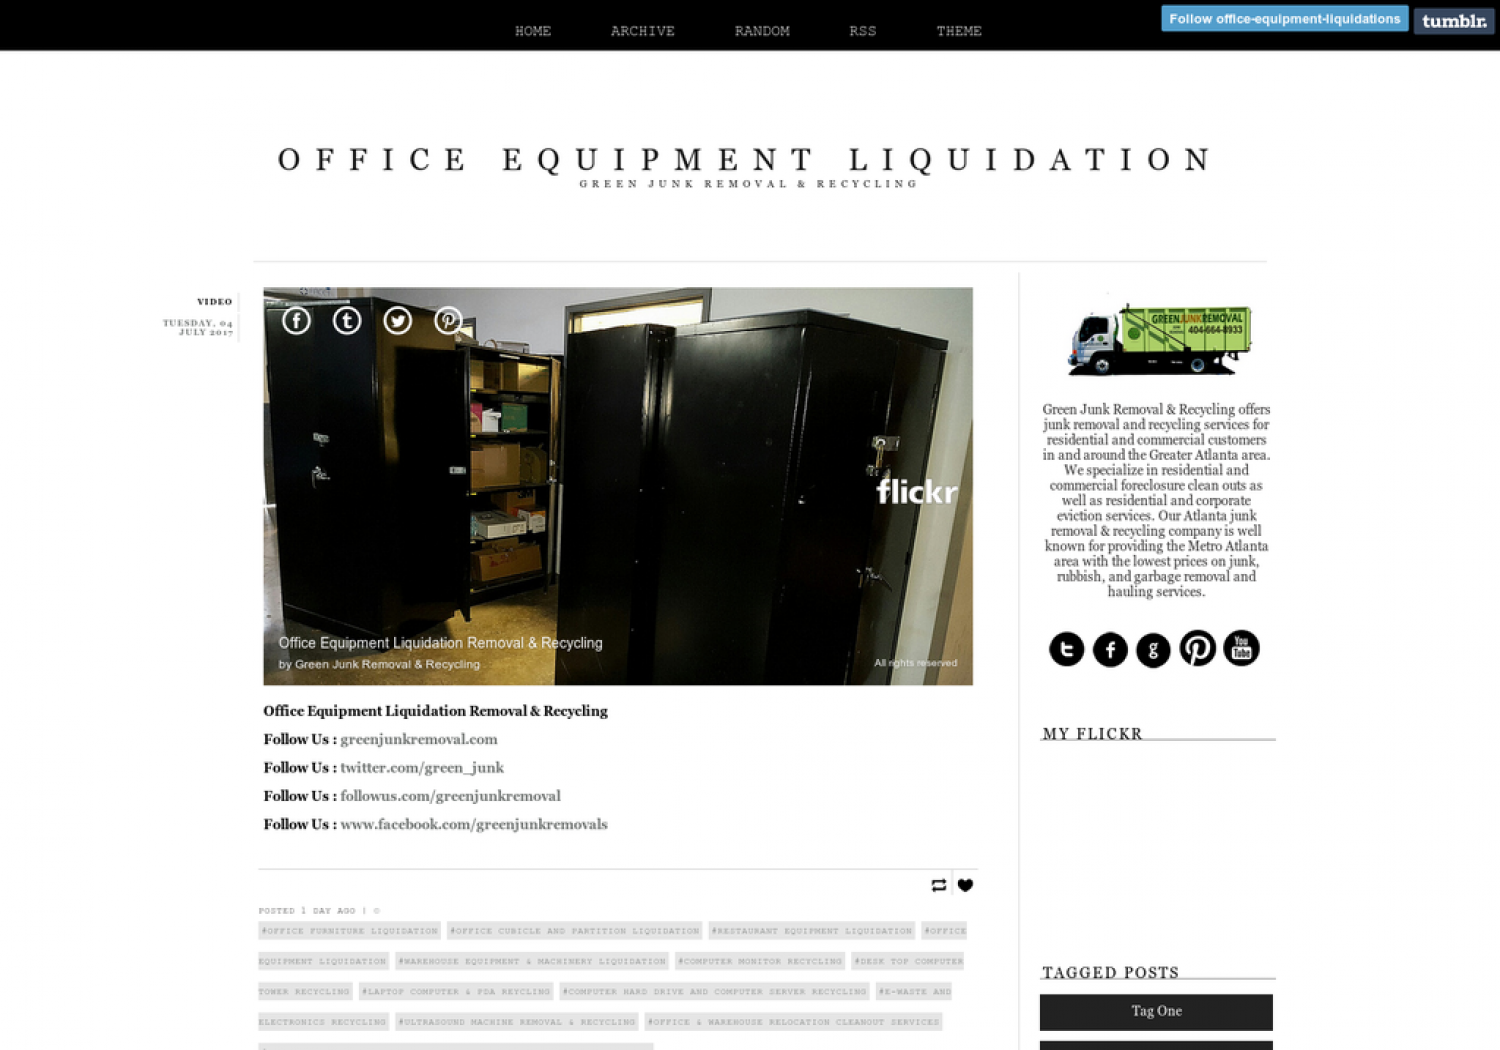 Office Equipment Liquidation Removal & Recycling  Infographic